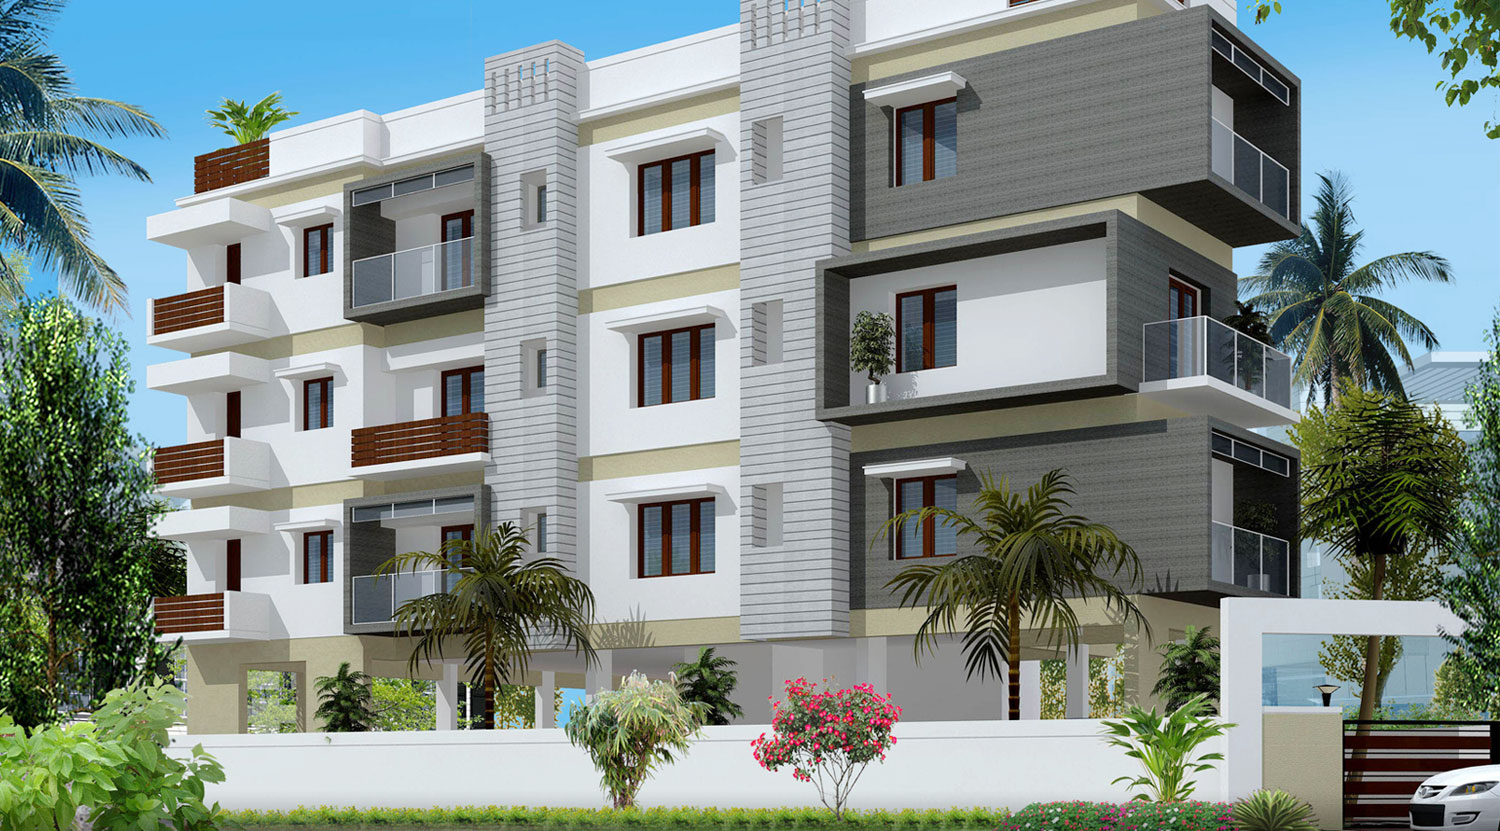 Flats for sale at Tambaram and Ambattur